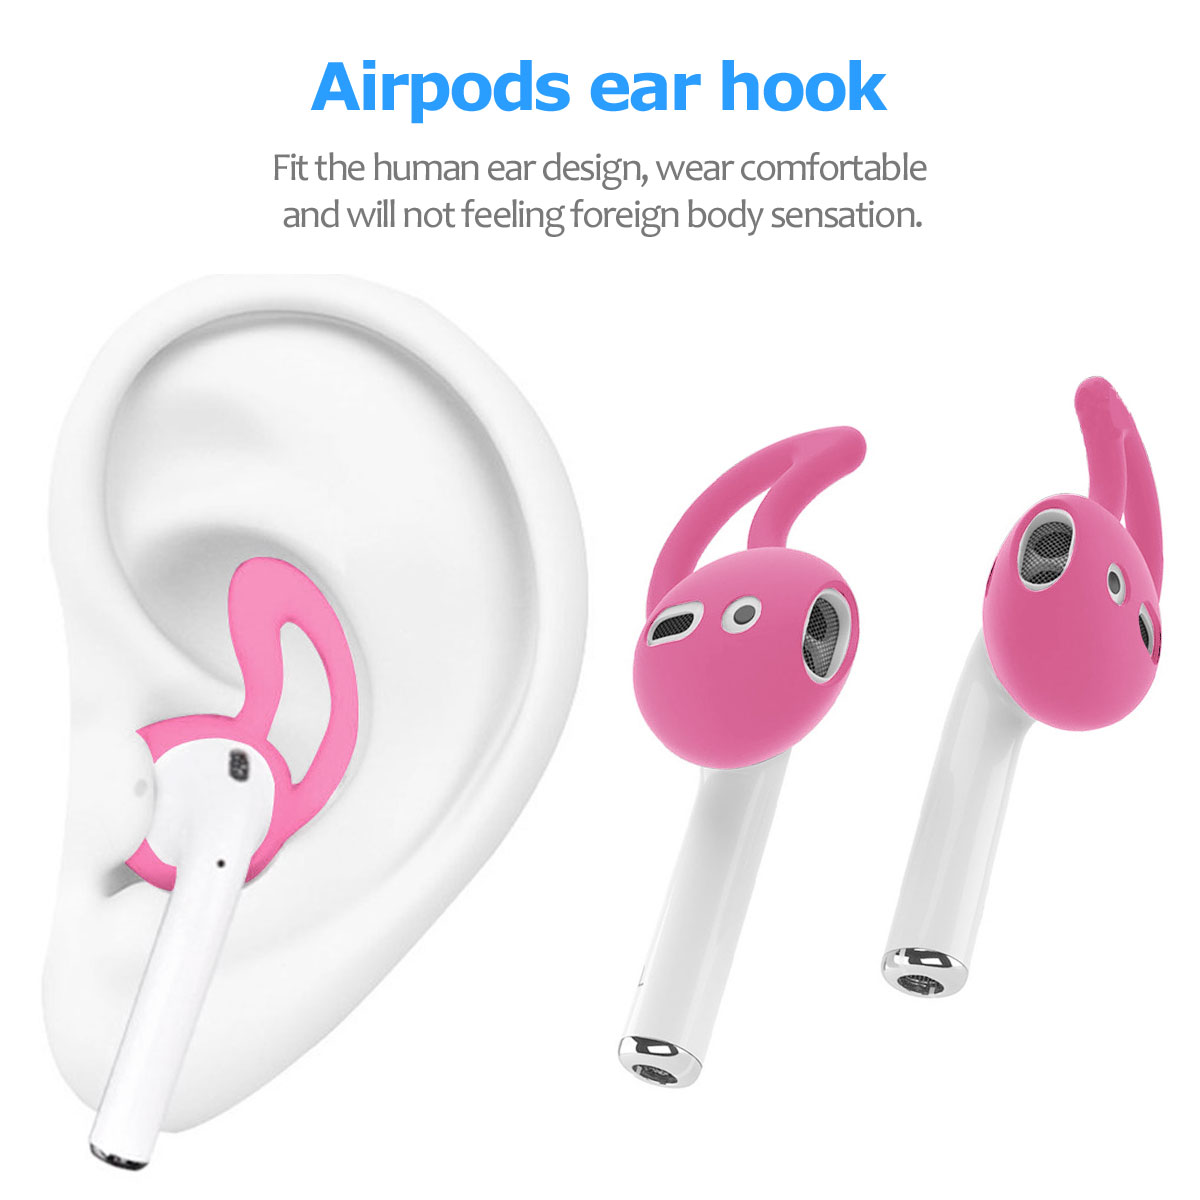 Silicone-Ruggged-Case-Cover-Earbuds-For-Apple-AirPods-2nd-Gen-Accessories-2019 thumbnail 54